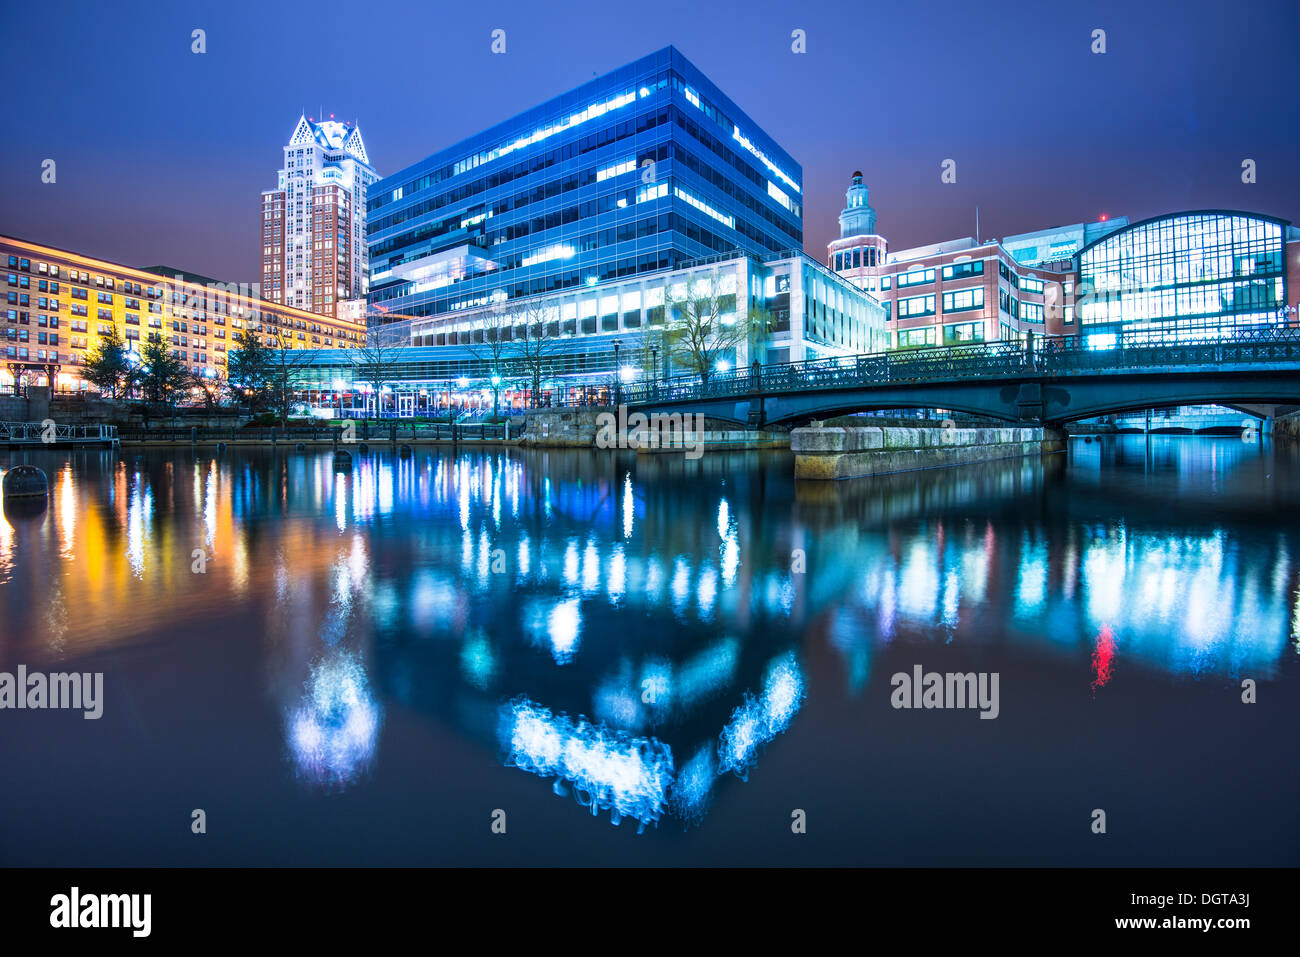 Providence, Rhode Island buildings at Waterplace Park. - Stock Image